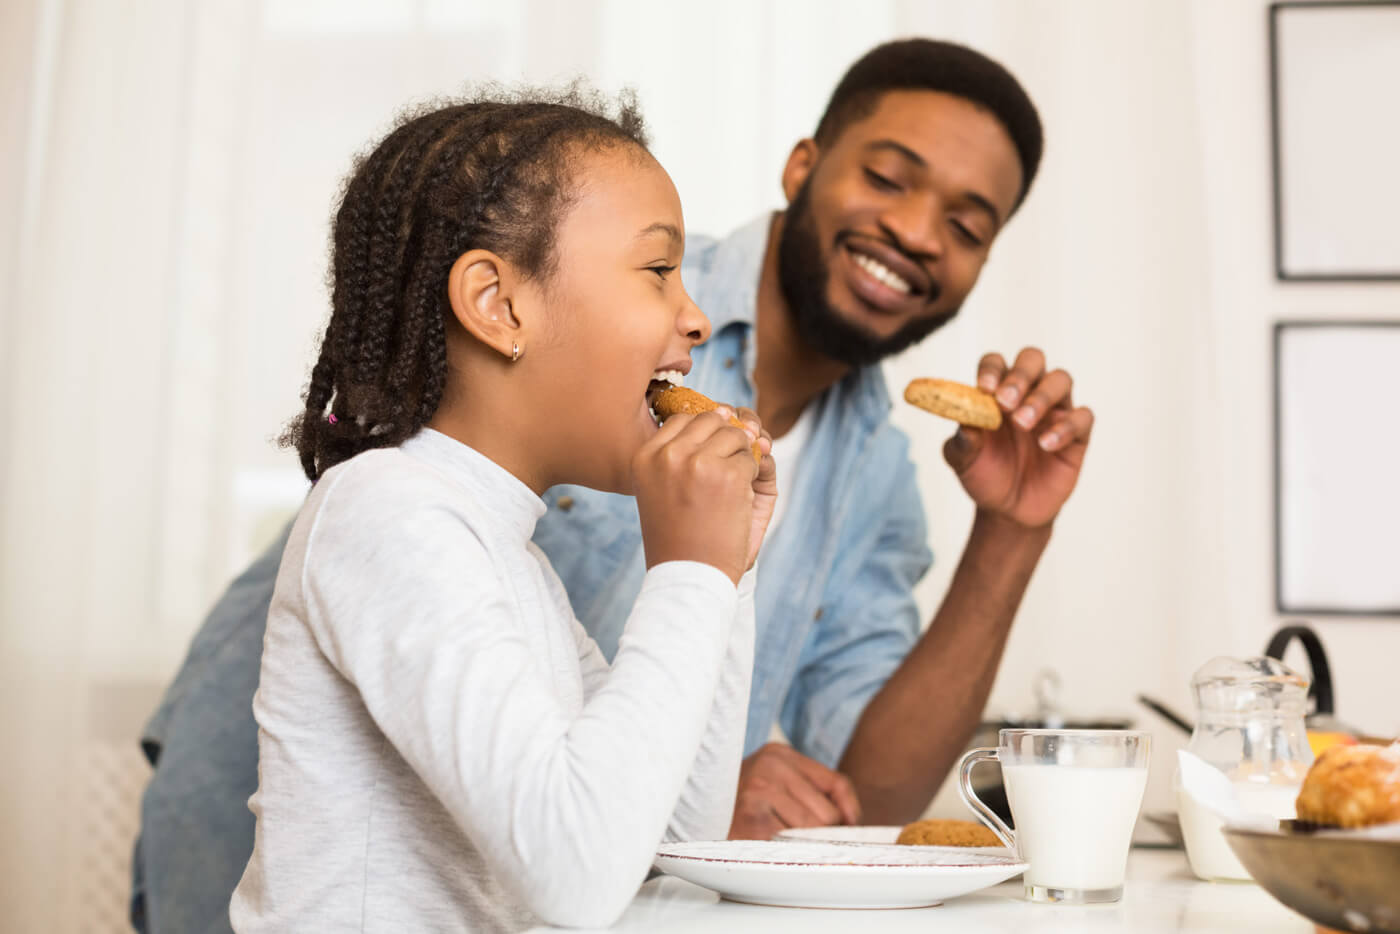 parent and child enjoying cookies in kitchen